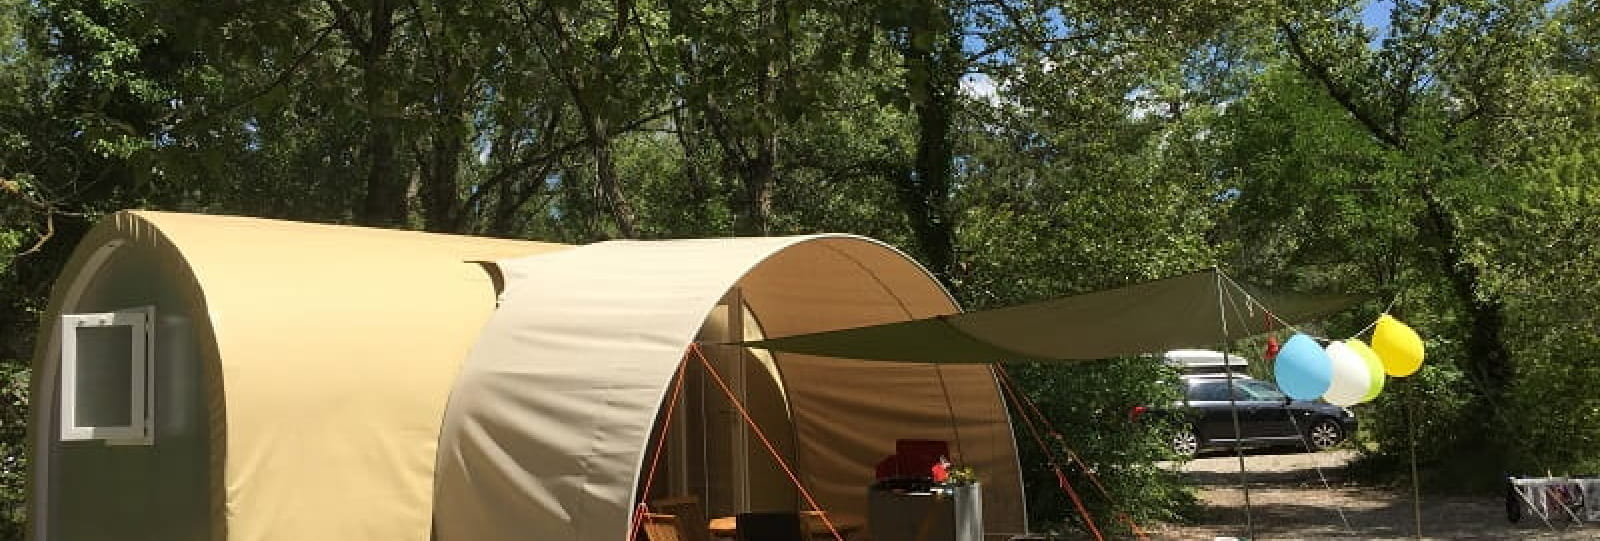 Coco Sweet - Camping les Chapelains